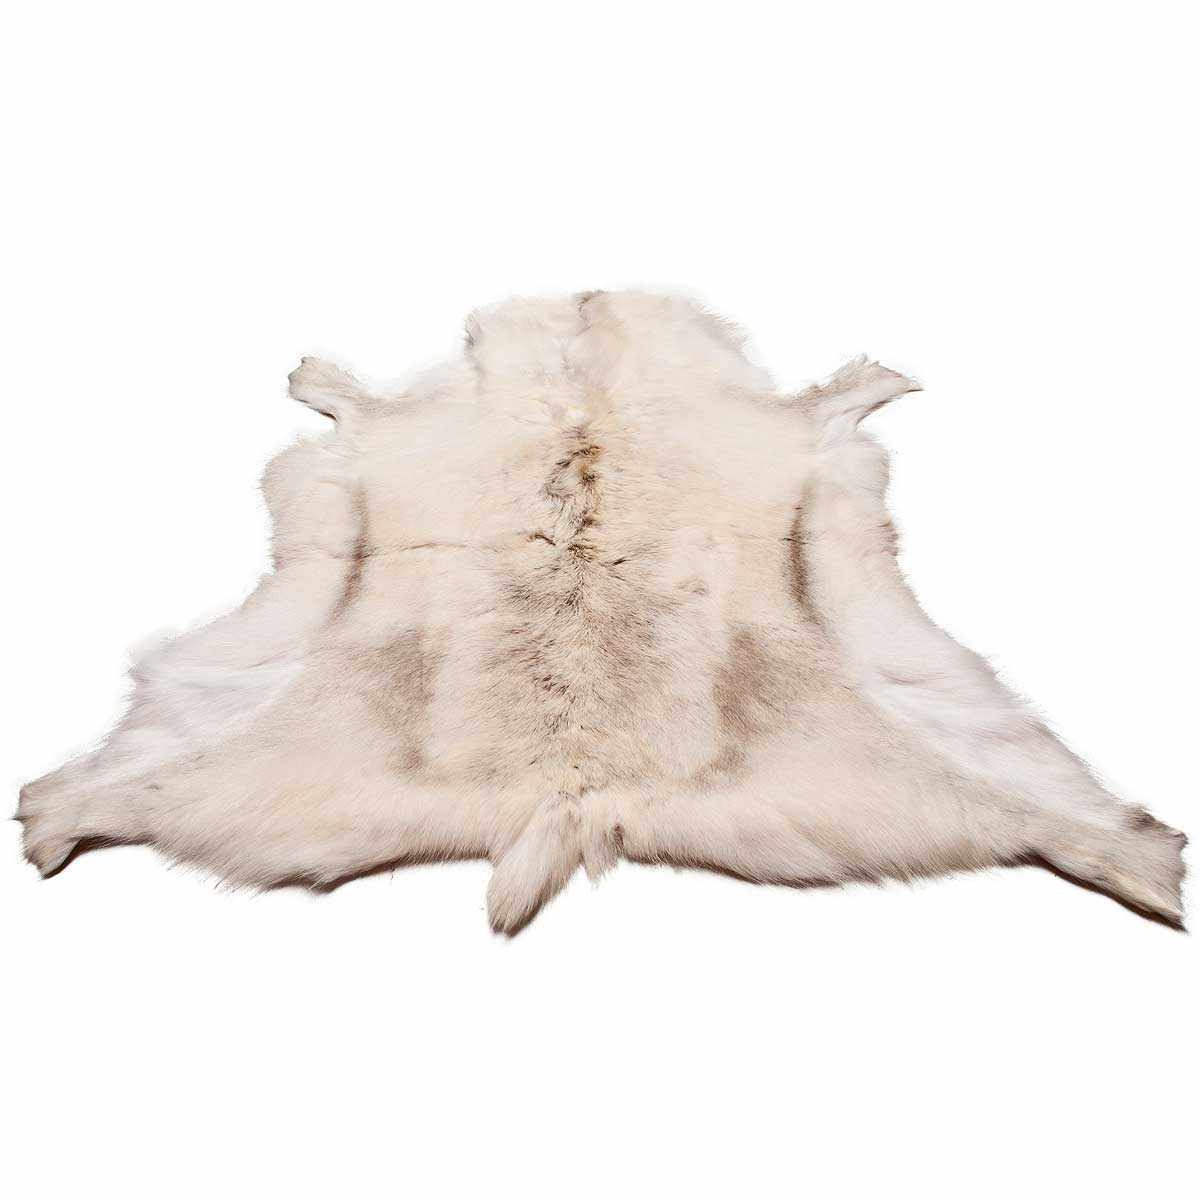 Large Sheepskin Rug | Fur Rug | Rabbit Fur Rug